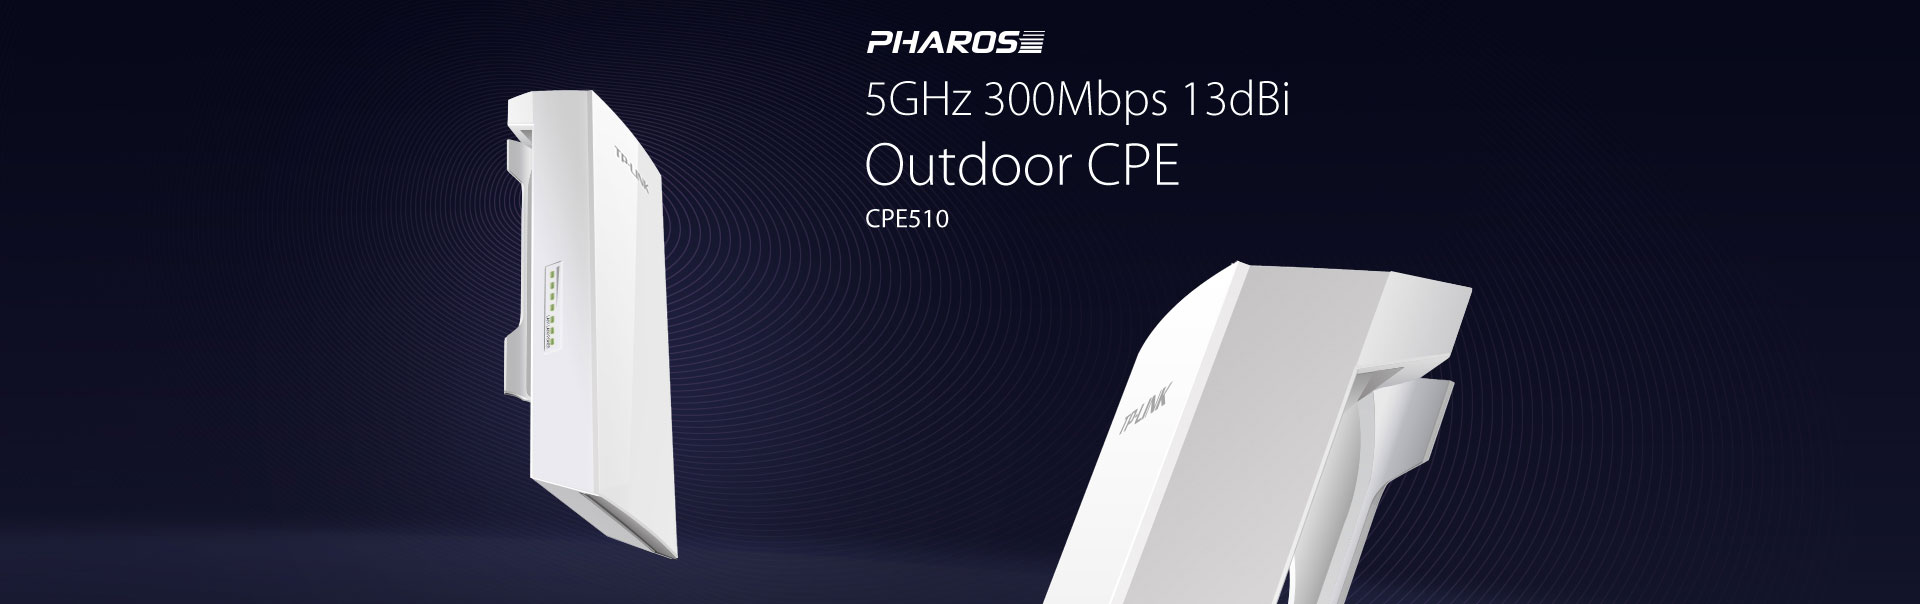 Pharos 5GHz 300Mbps 9dBi Outdoor CPE